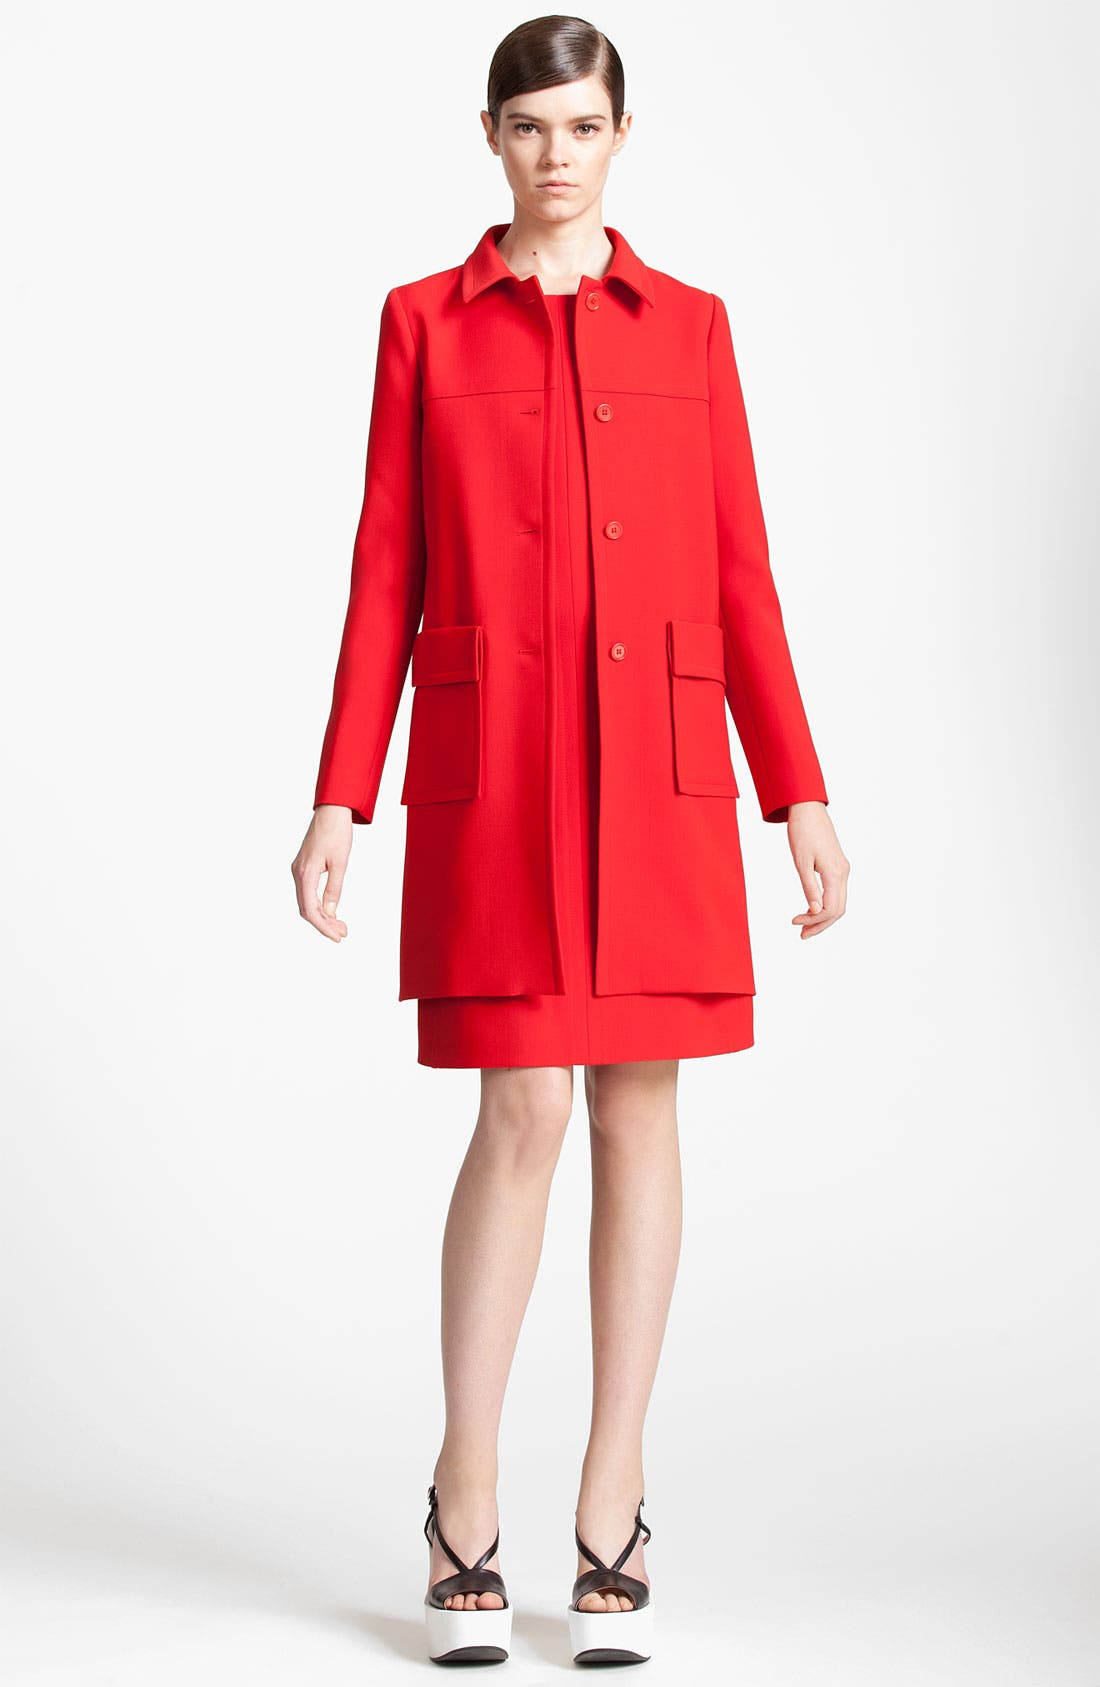 Main Image - Jil Sander Coat & Dress